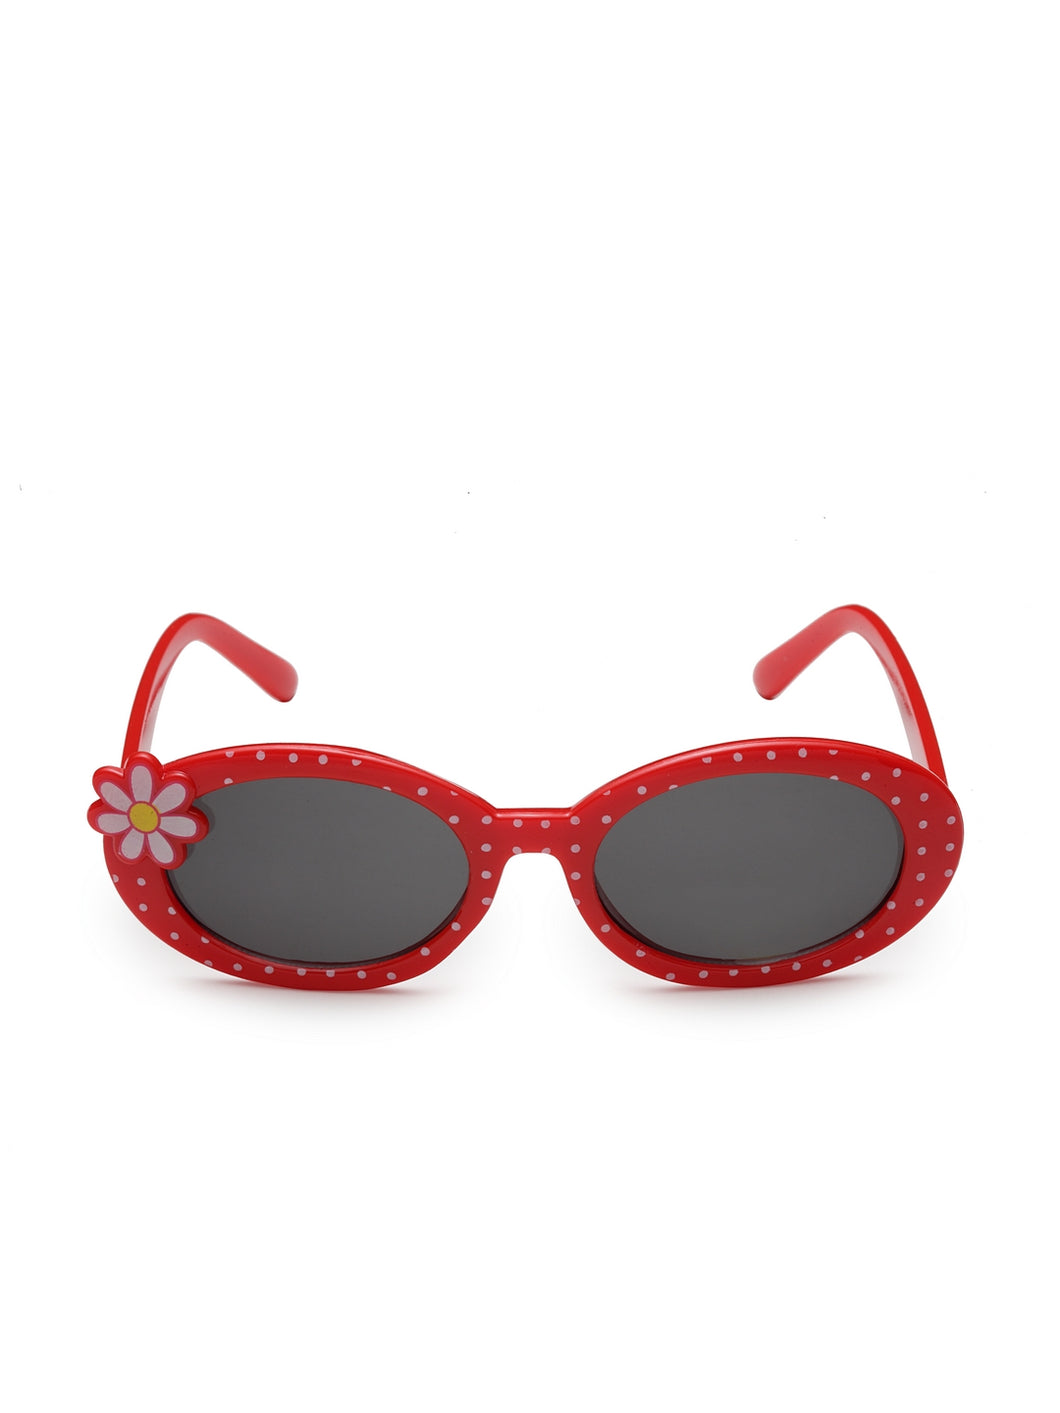 Stol'n Premium Attractive Fashionable UV-Protected Oval Shape Sunglasses - Red